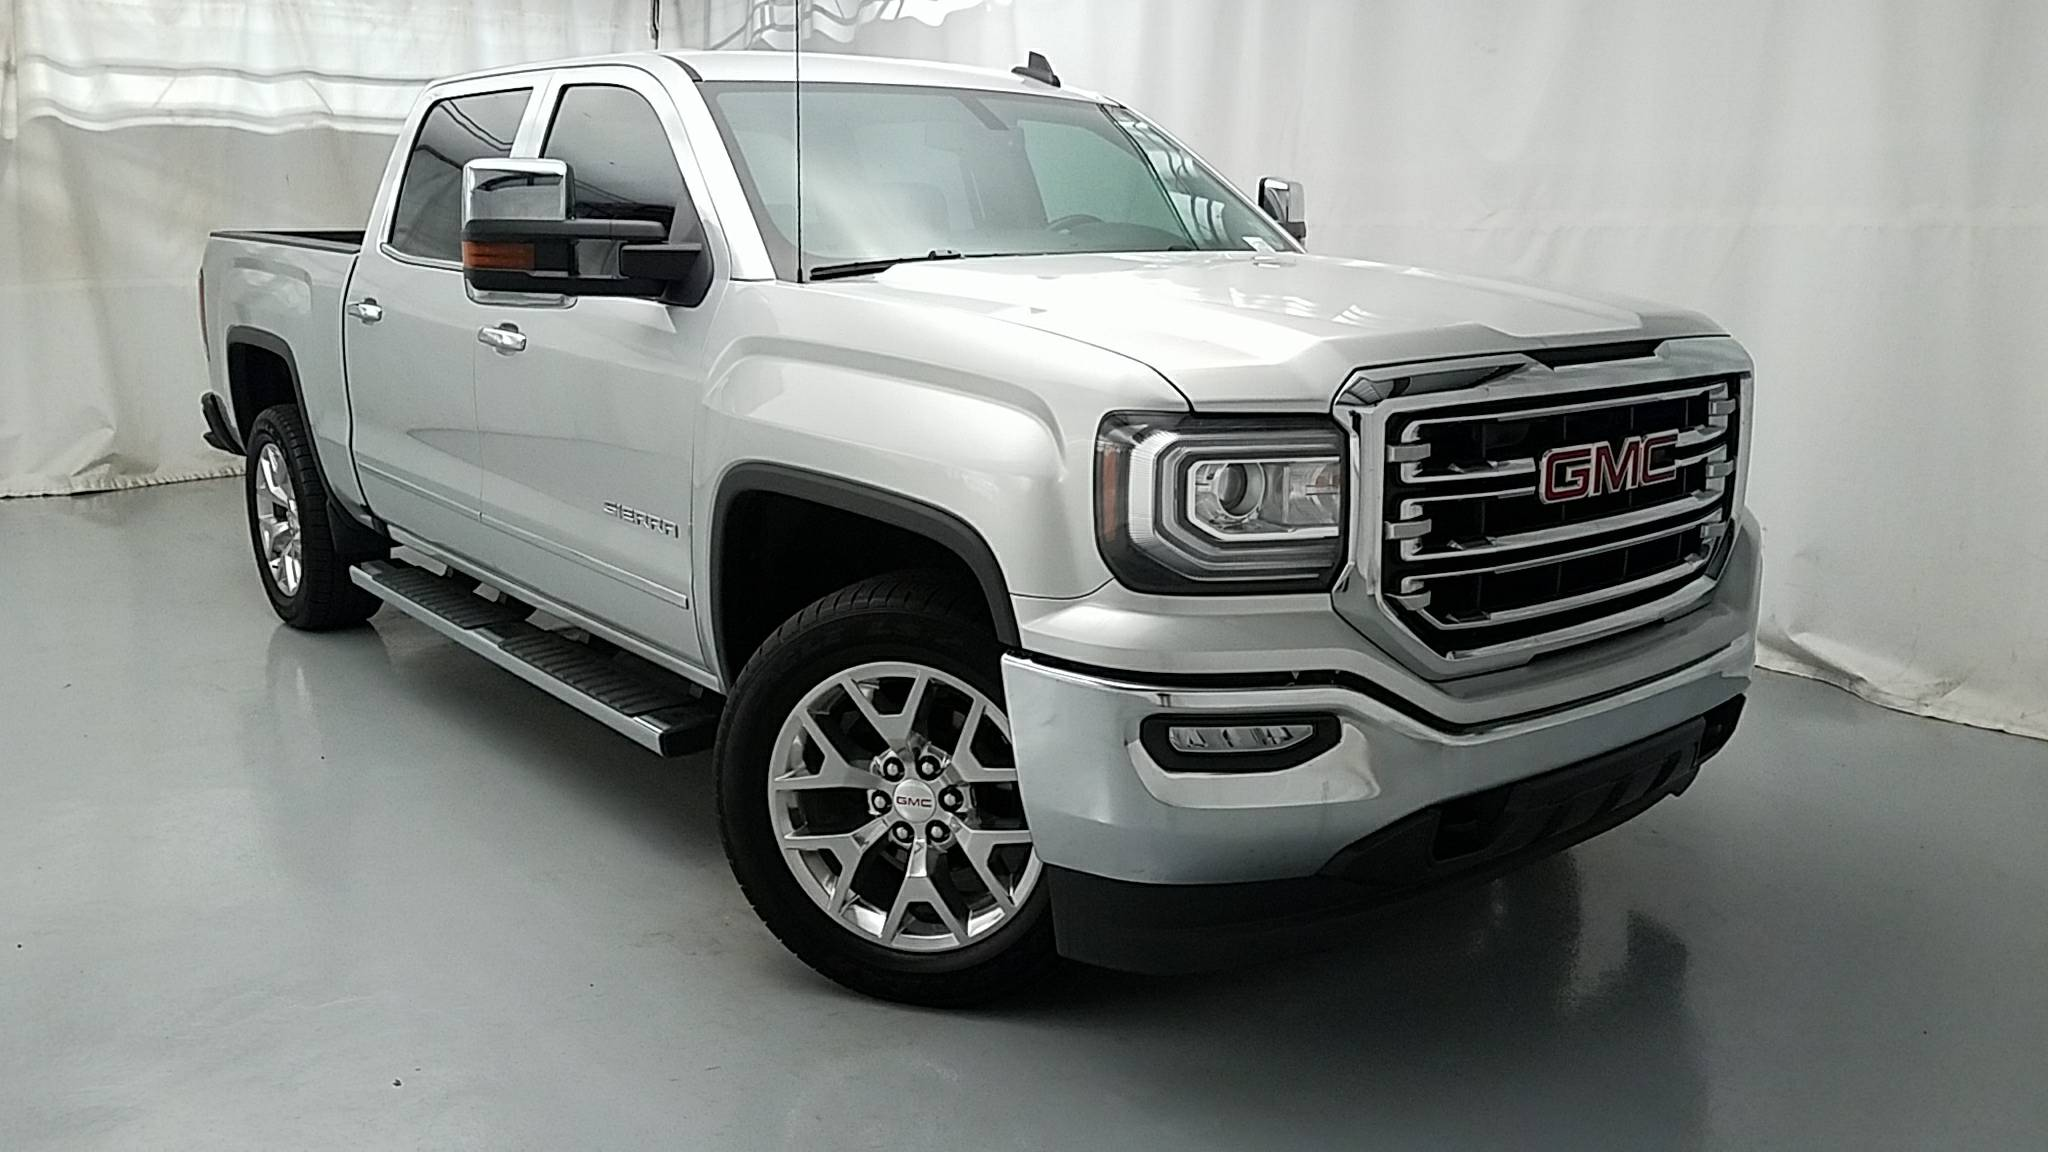 trucks sierra jun delivers fe us content gmc pages used detail for v sale mpg en vehicles news highway media